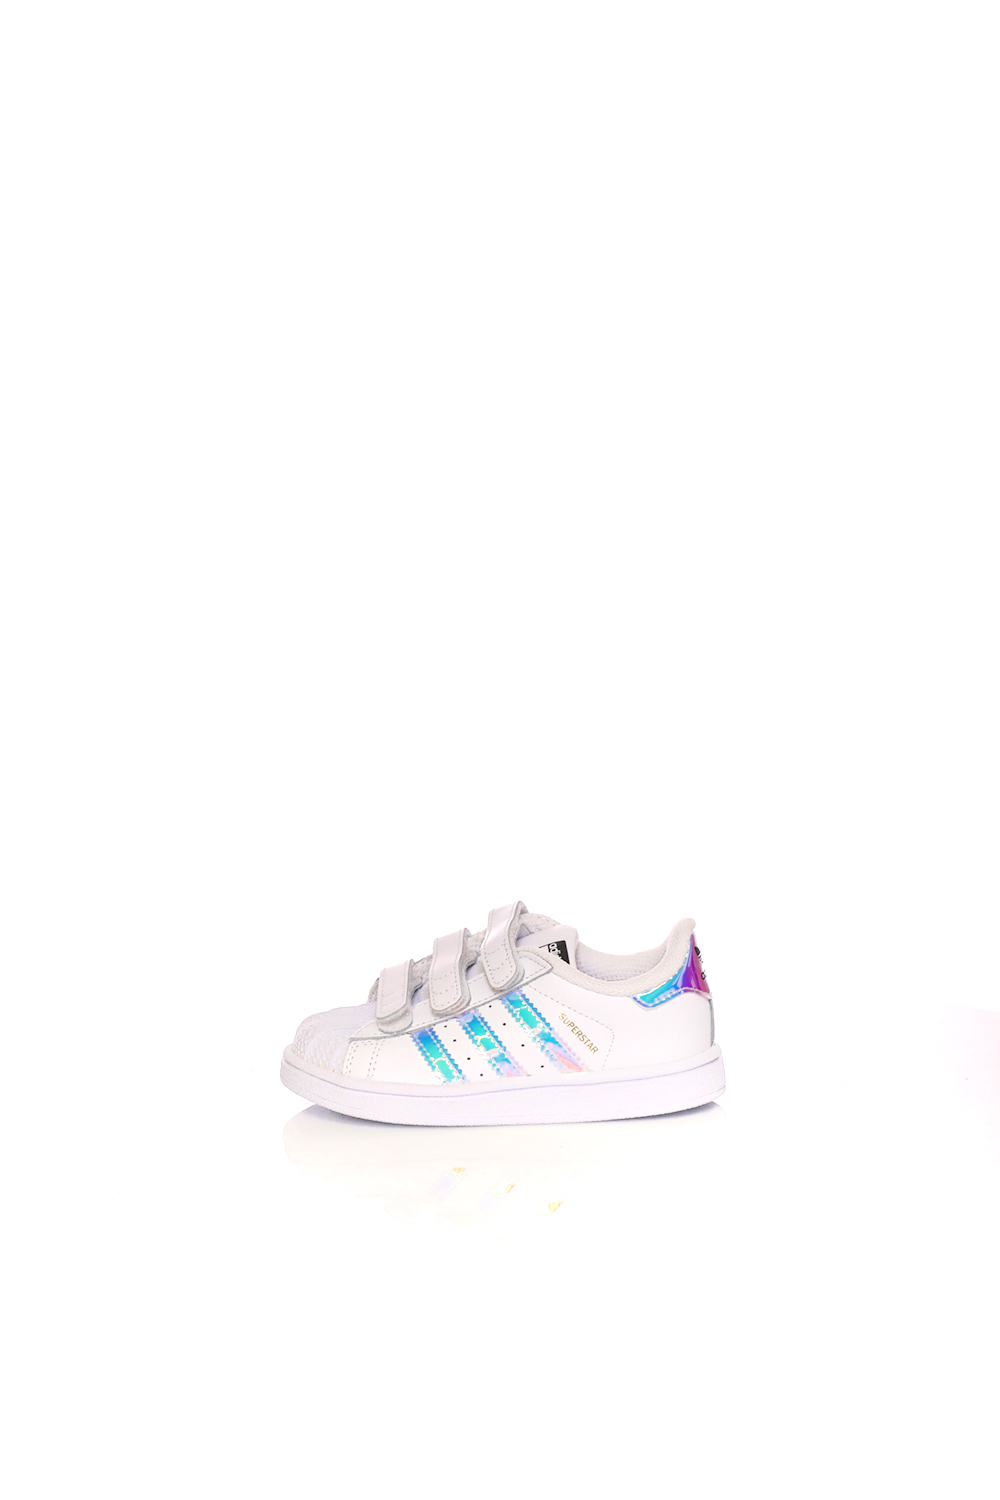 -40% Collective Online adidas Originals – Βρεφικά παπούτσια SUPERSTAR CF I  λευκά 1af5095e802